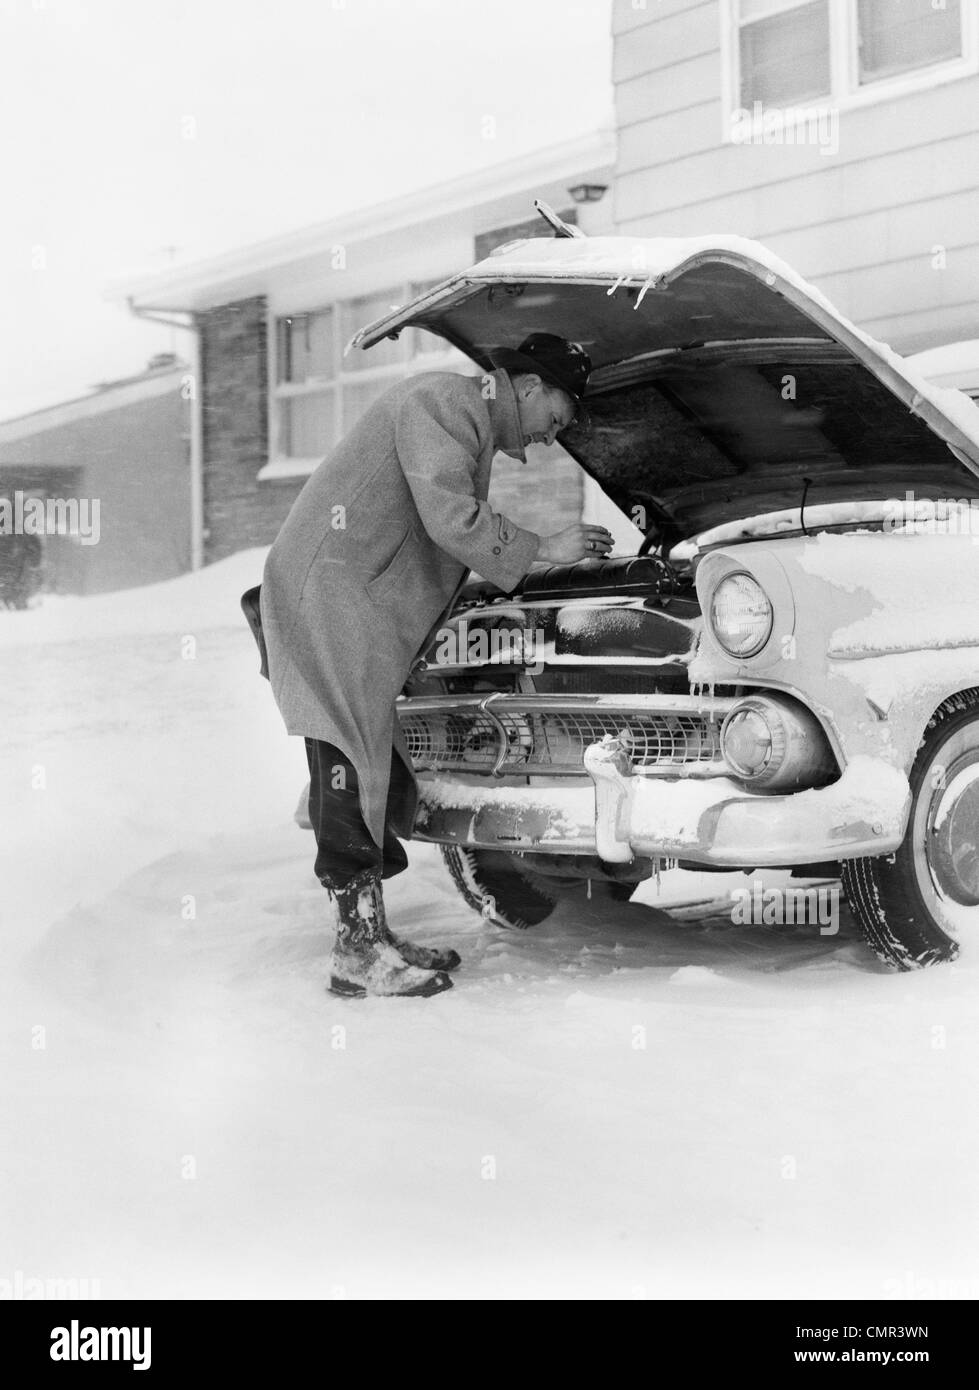 Old Cars Broken Up Cars Snow White Stock Photos & Old Cars Broken Up ...